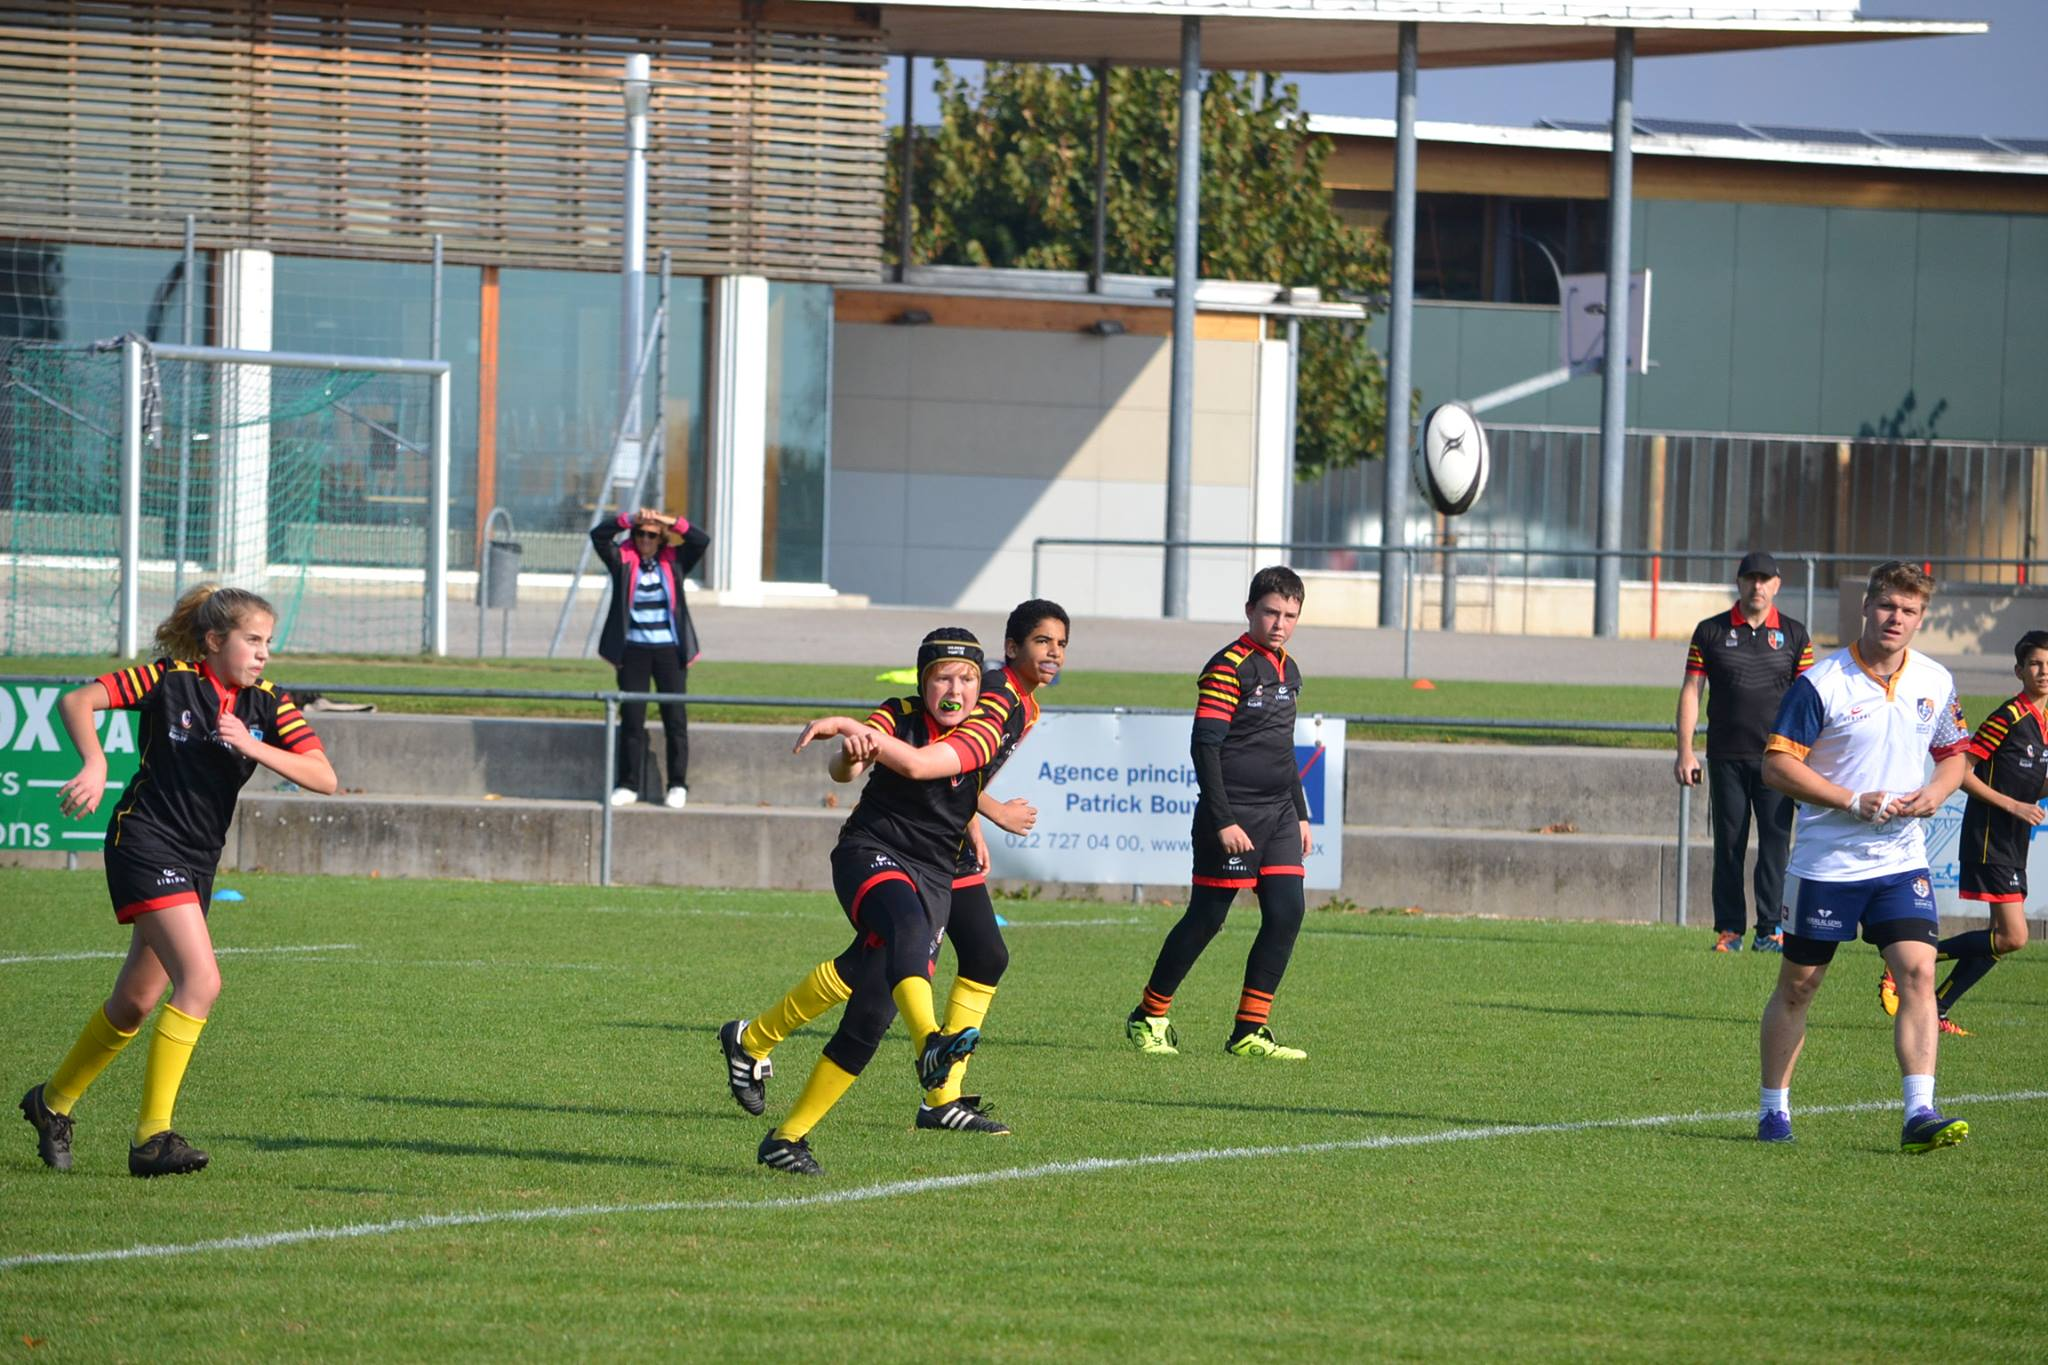 U14 vs Ecole Int. II 8.10.2016 2